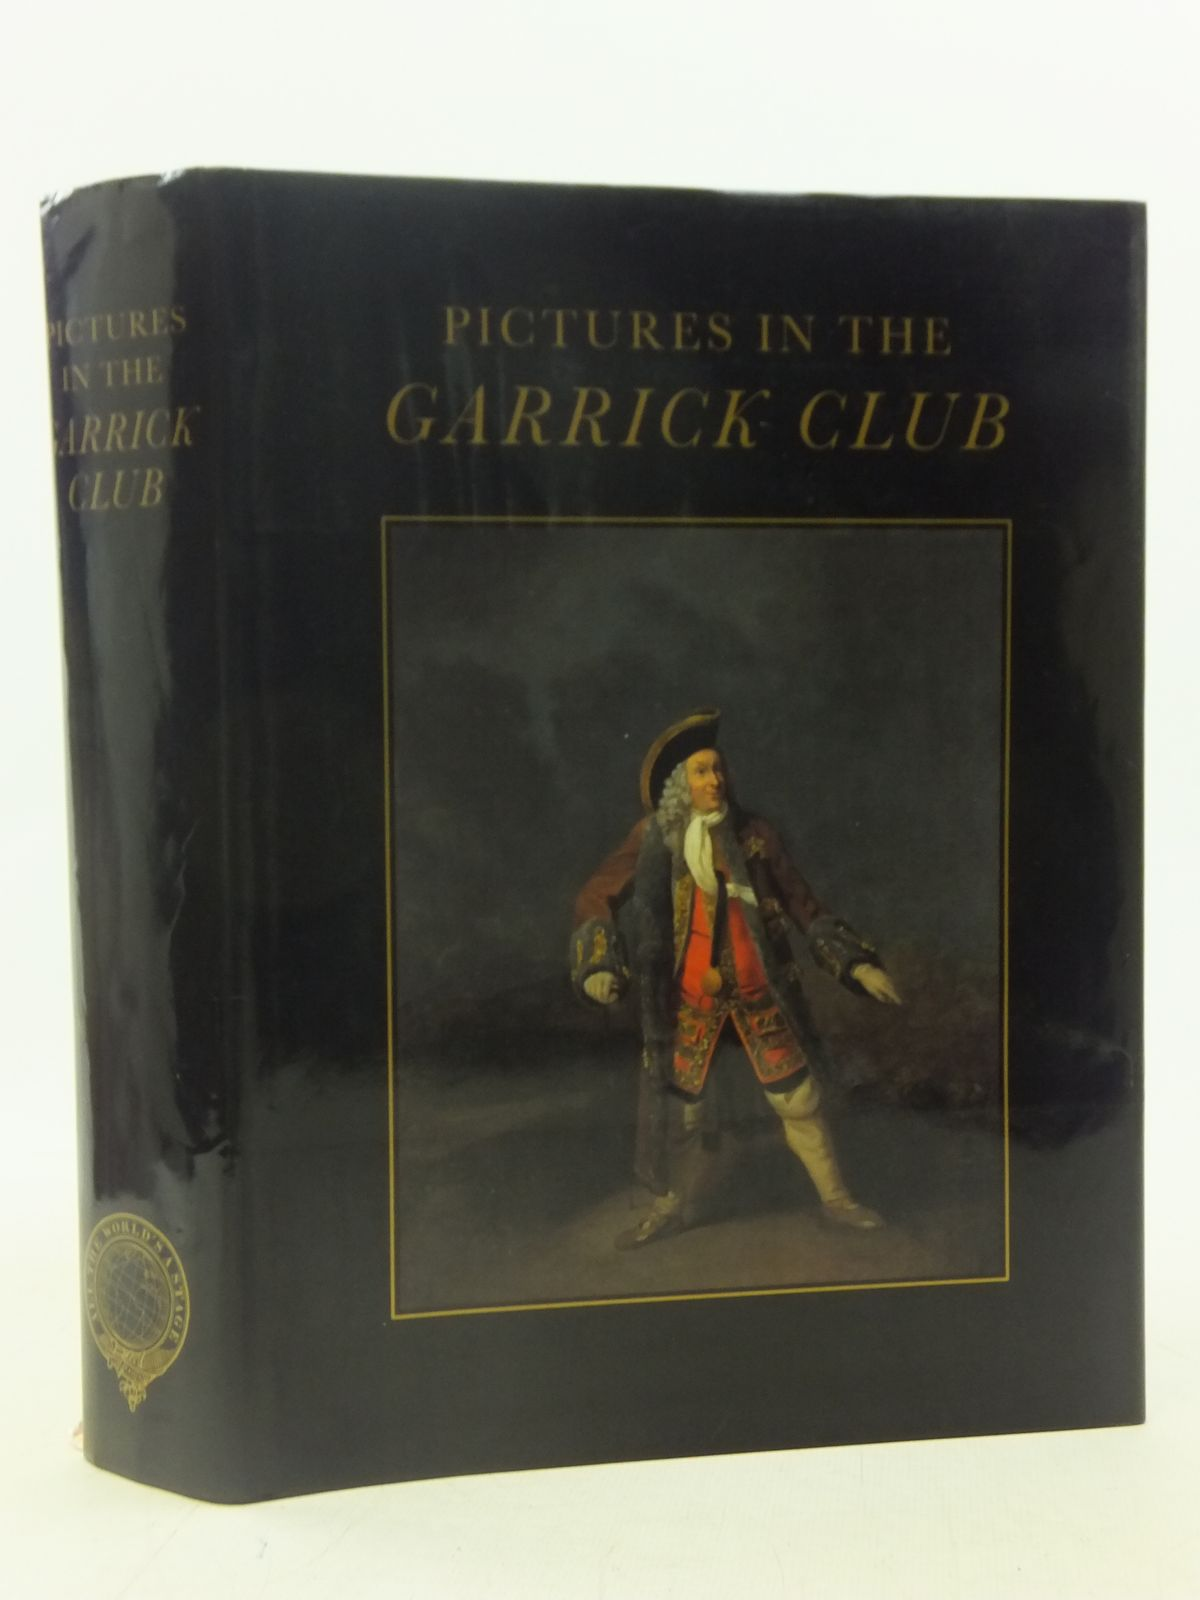 Photo of PICTURES IN THE GARRICK CLUB A CATALOGUE written by Ashton, Geoffrey published by Garrick Club (STOCK CODE: 1605843)  for sale by Stella & Rose's Books